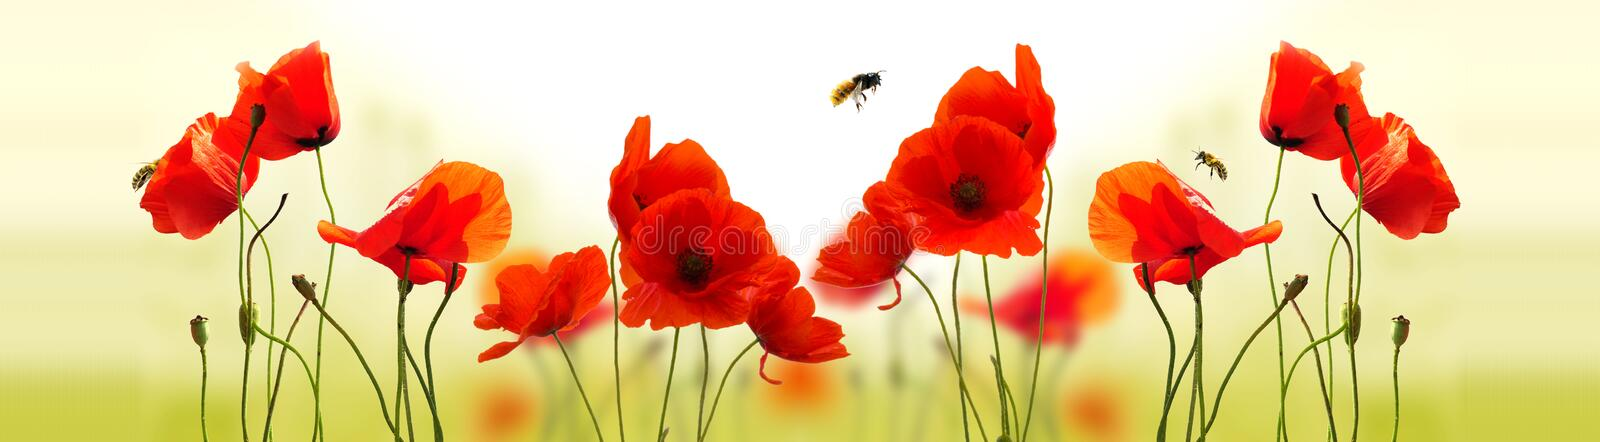 Poppies and bees. Wild red poppies with bees flying over